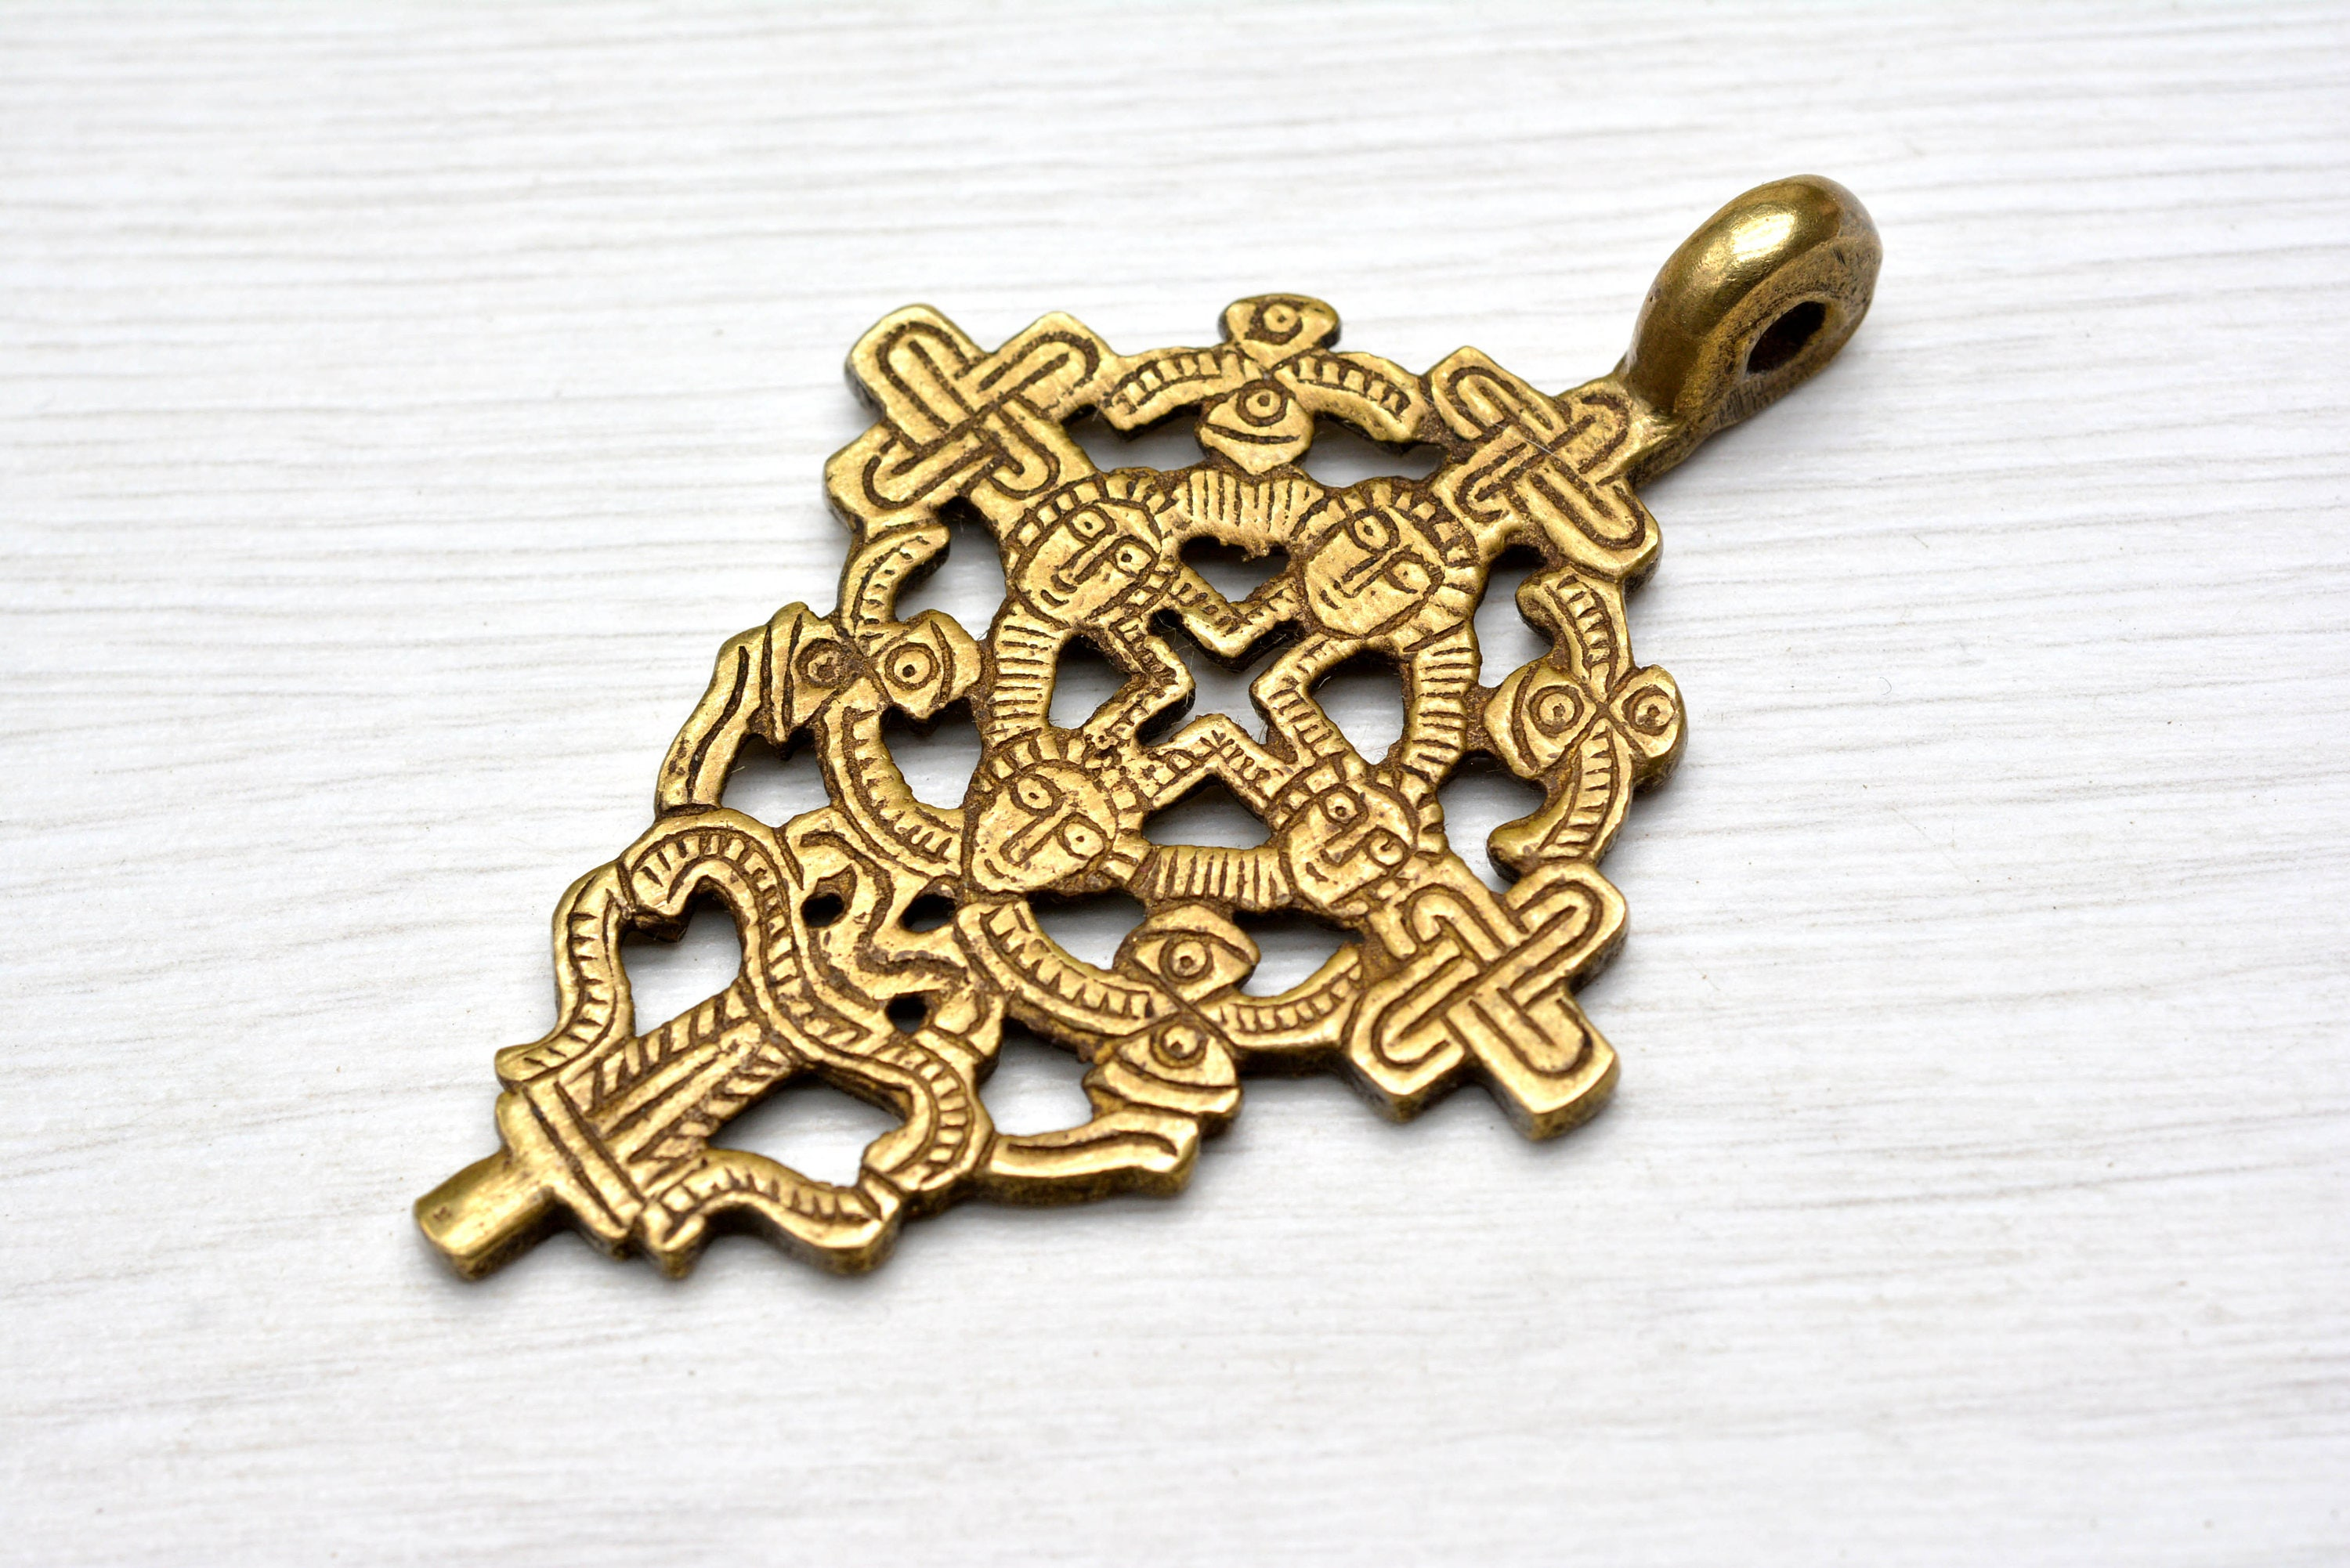 cross auction jewellery ornate auctions silver jerusalem crusaders original secondhand pendant large beautiful